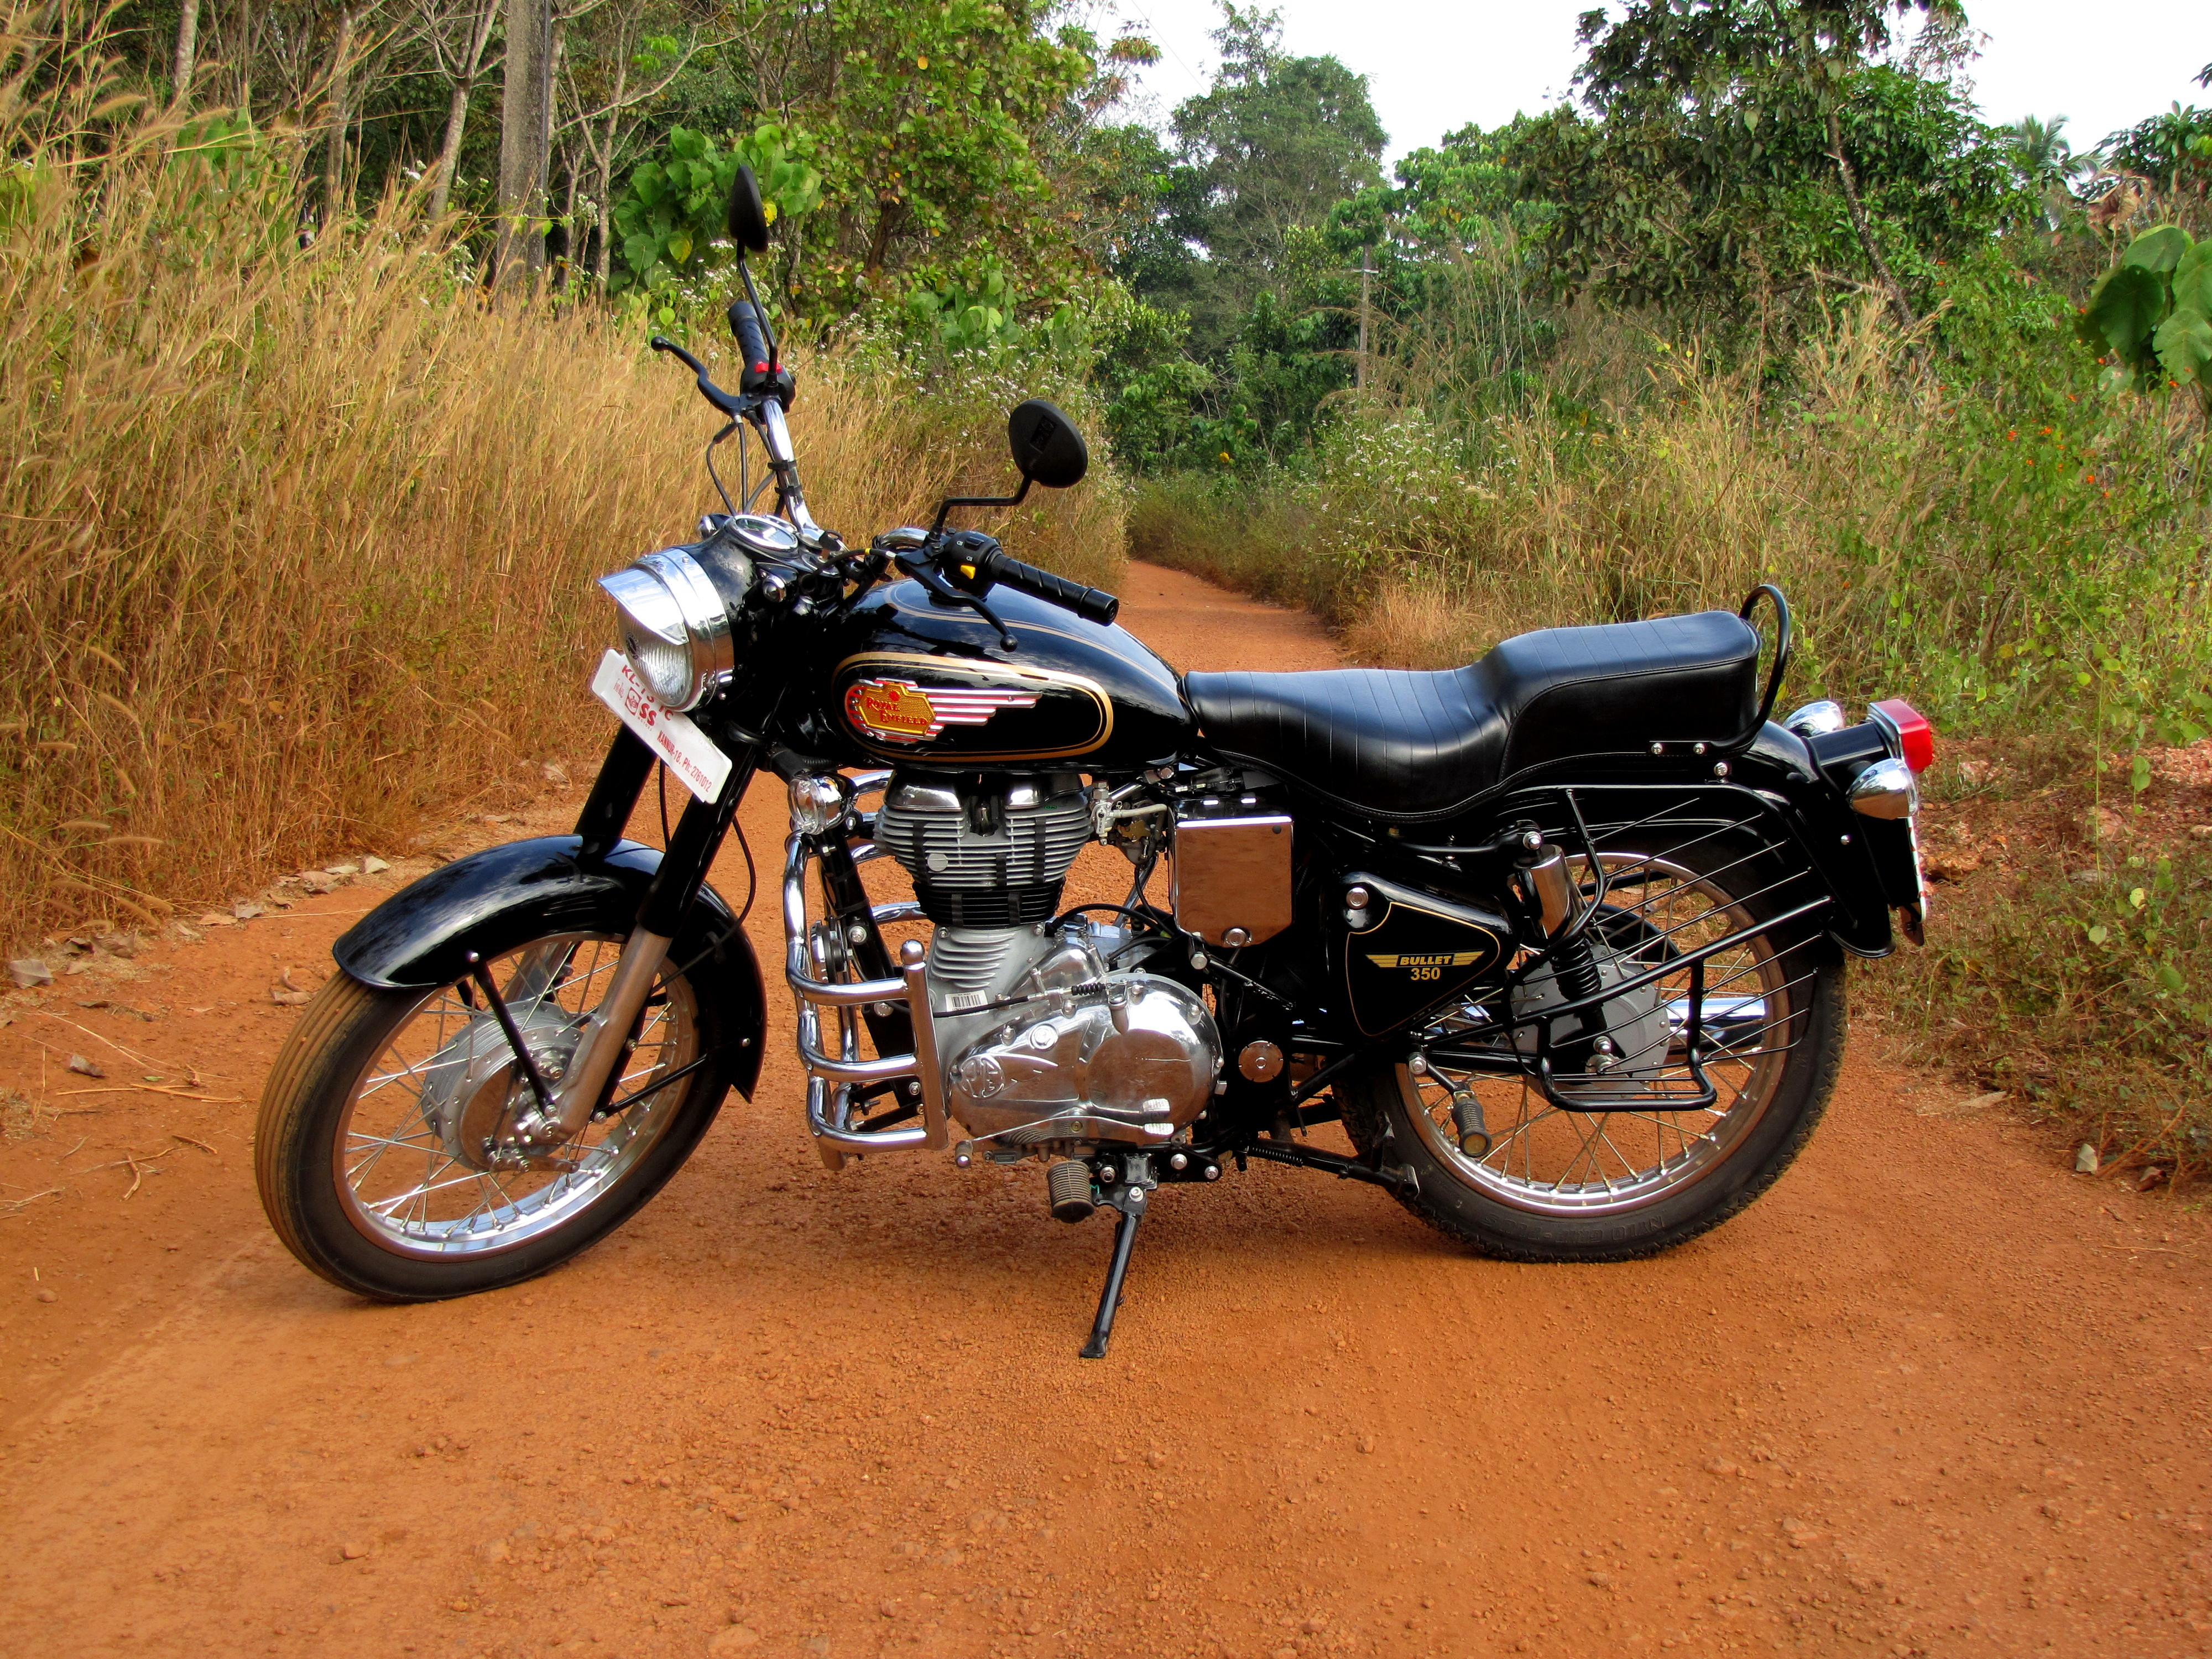 Royal Enfield Bullet 350 Army 1996 images #122785